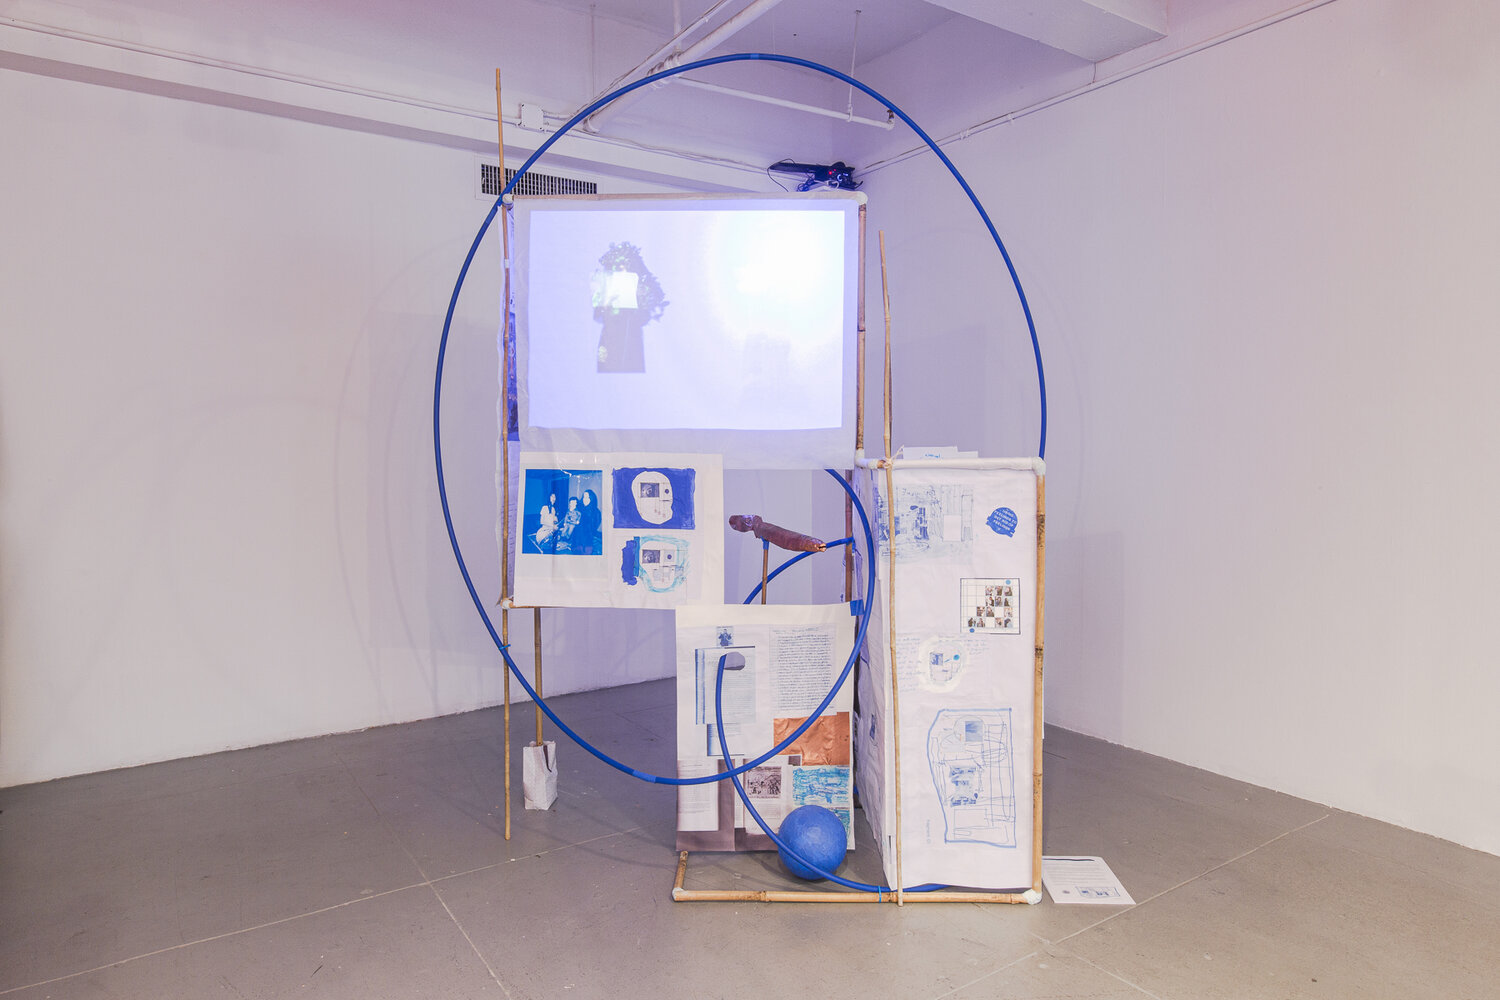 A Constructed World with Stephanie Lin,  Fragment:01 (Live Eels) , bamboo, film projection on paper screen, epoxy putty, hula hoop, copper, paper, various objects, 6.5ft h x 5ft w x 3ft d, 2019.